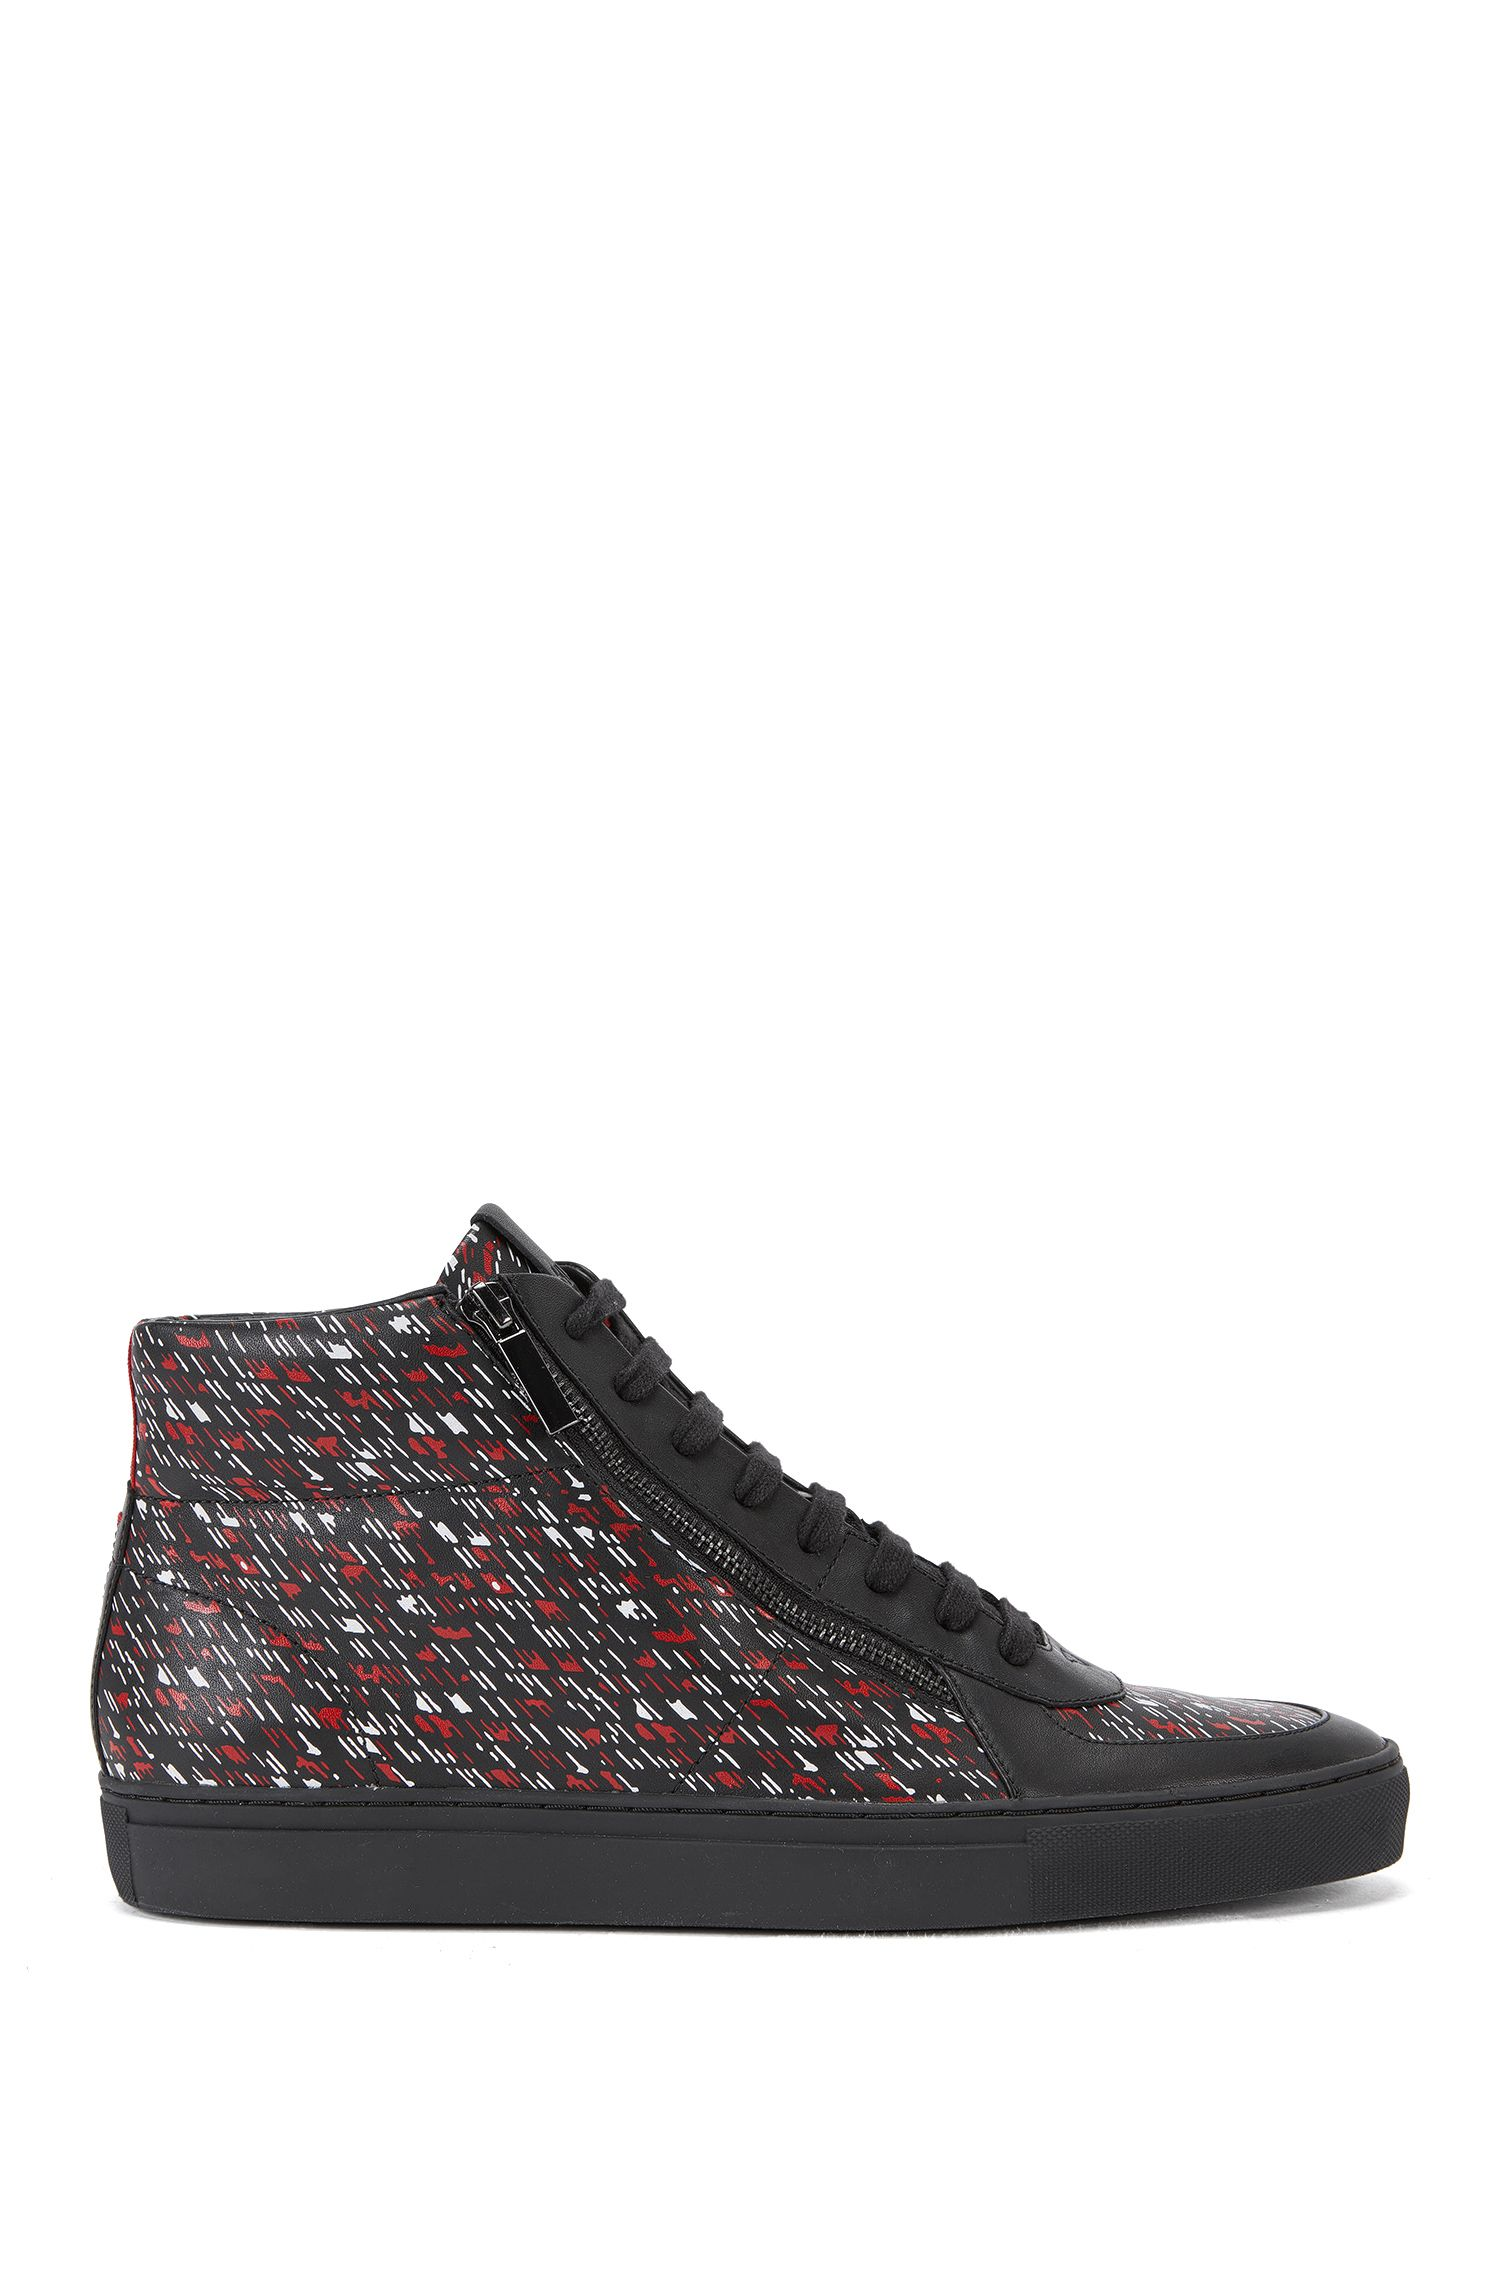 High-top trainers in graphic printed leather